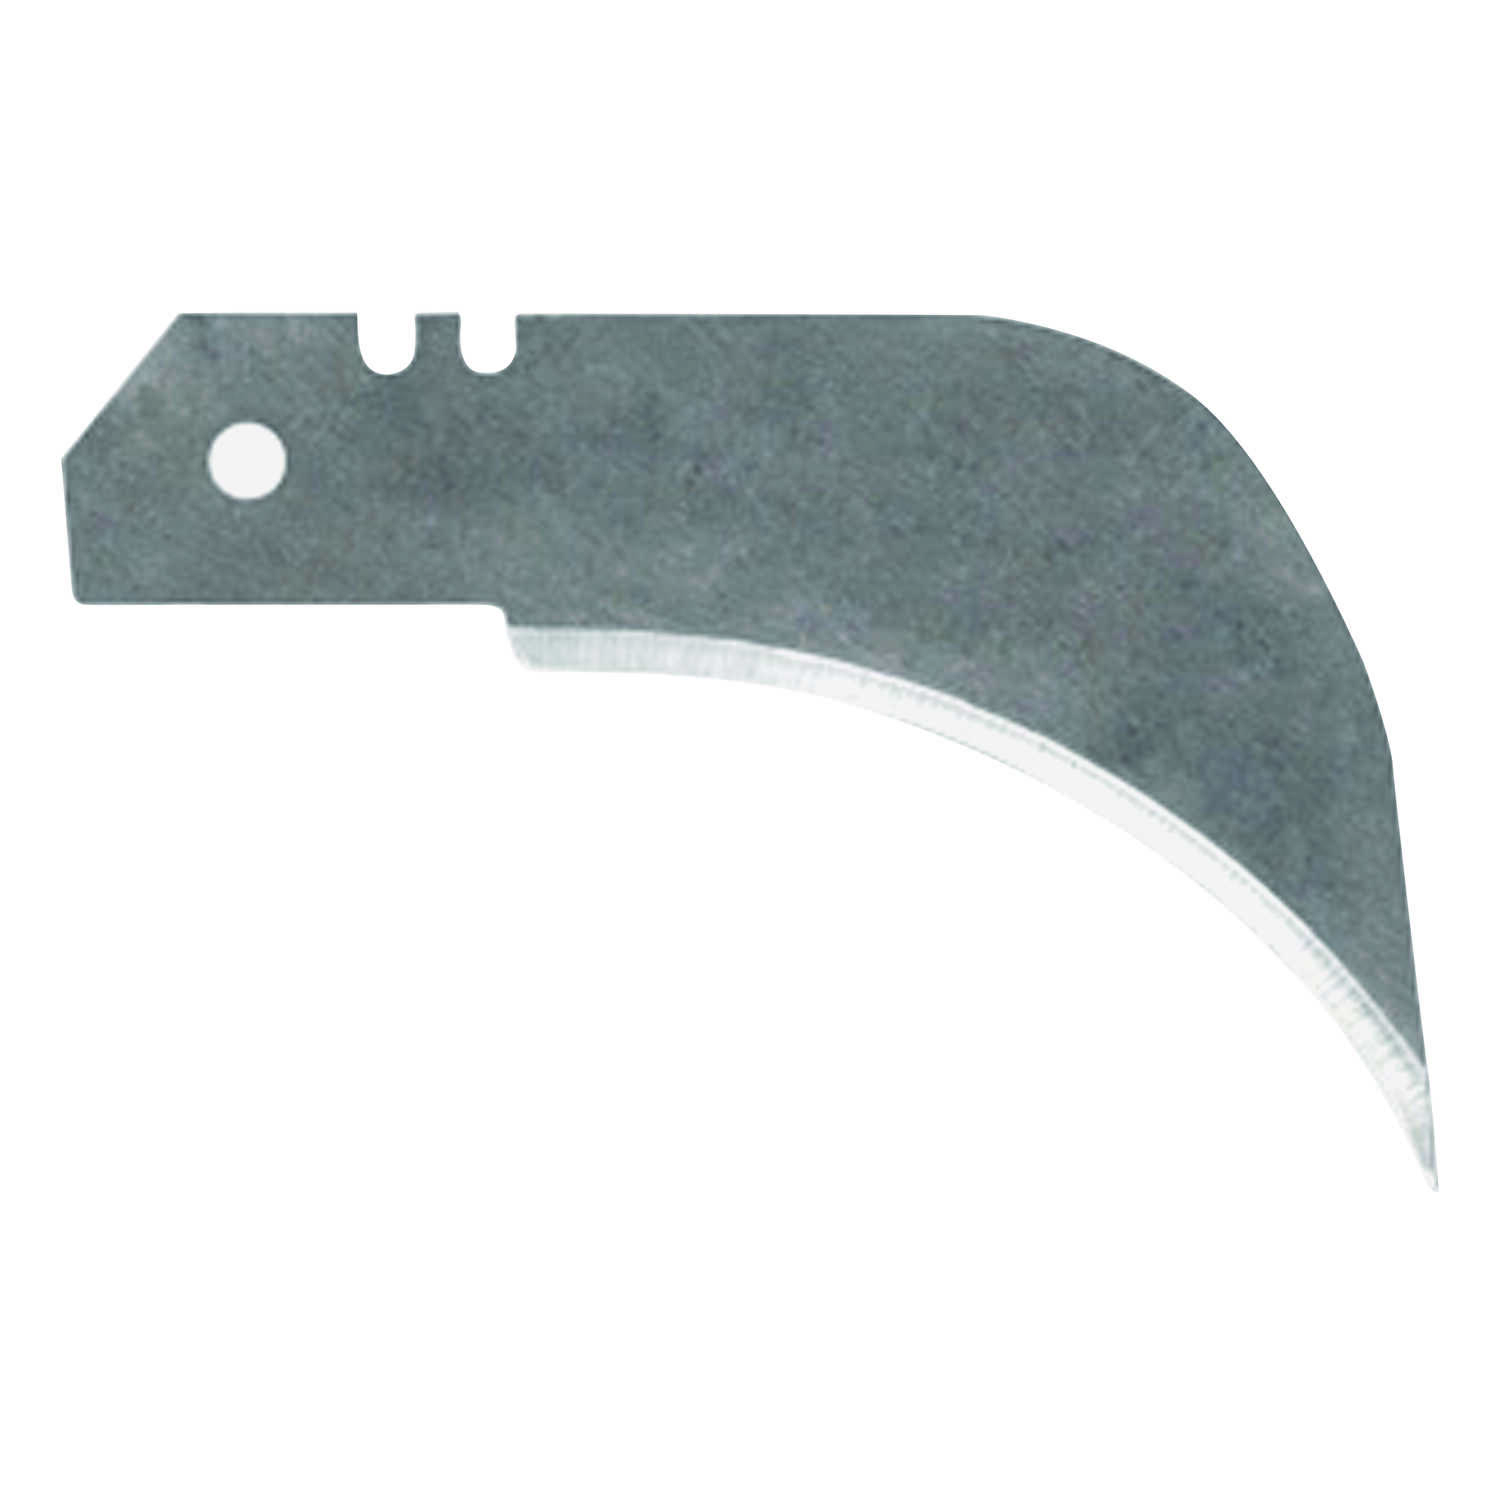 Ace  Linoleum  2.24 in. L x 0.024 in.  Carbon Steel  Hook  1 pk Replacement Blade